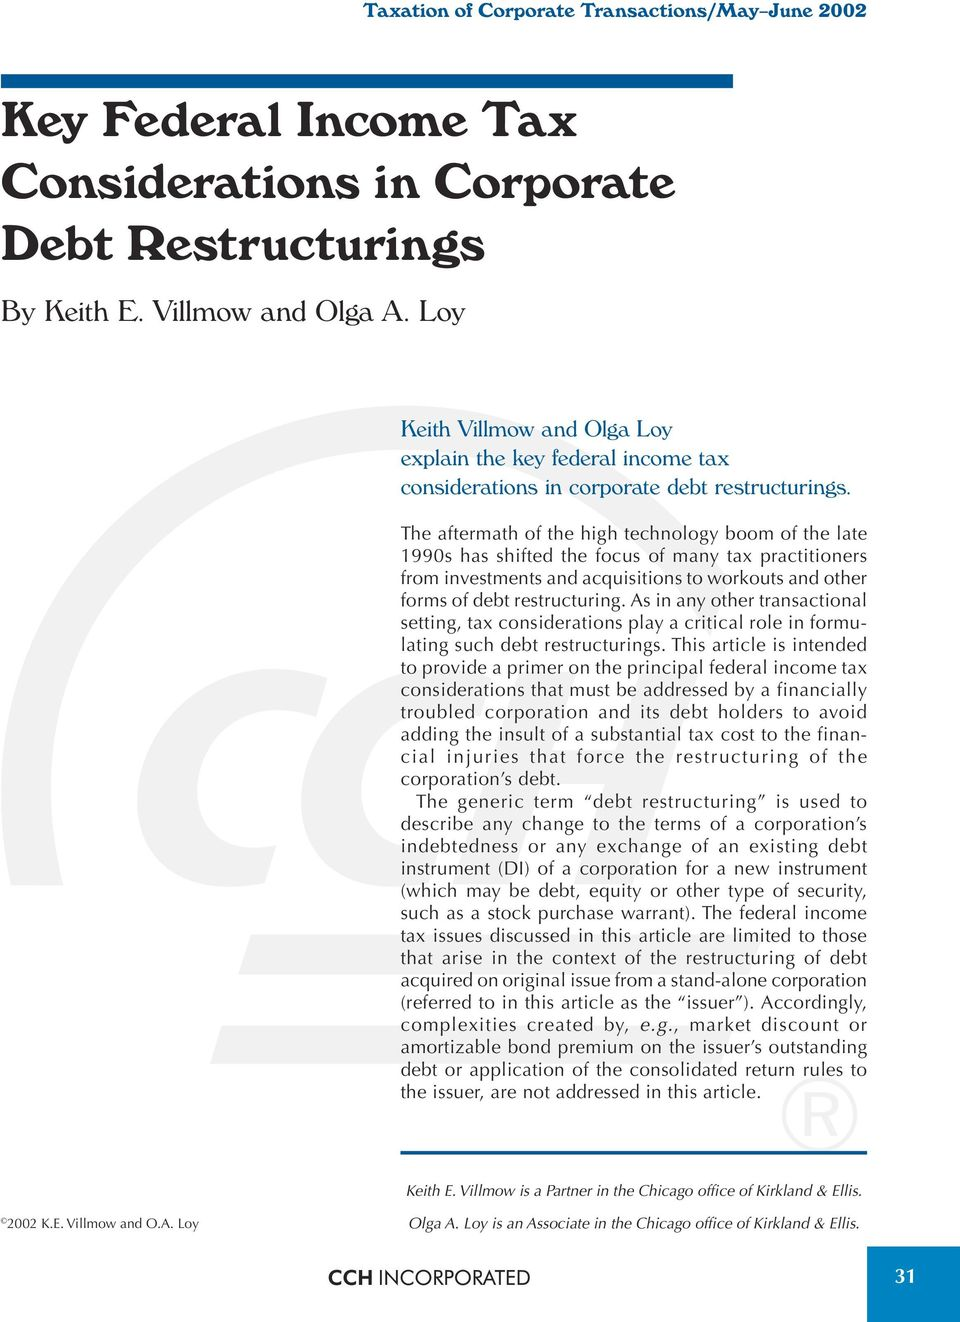 The aftermath of the high technology boom of the late 1990s has shifted the focus of many tax practitioners from investments and acquisitions to workouts and other forms of debt restructuring.